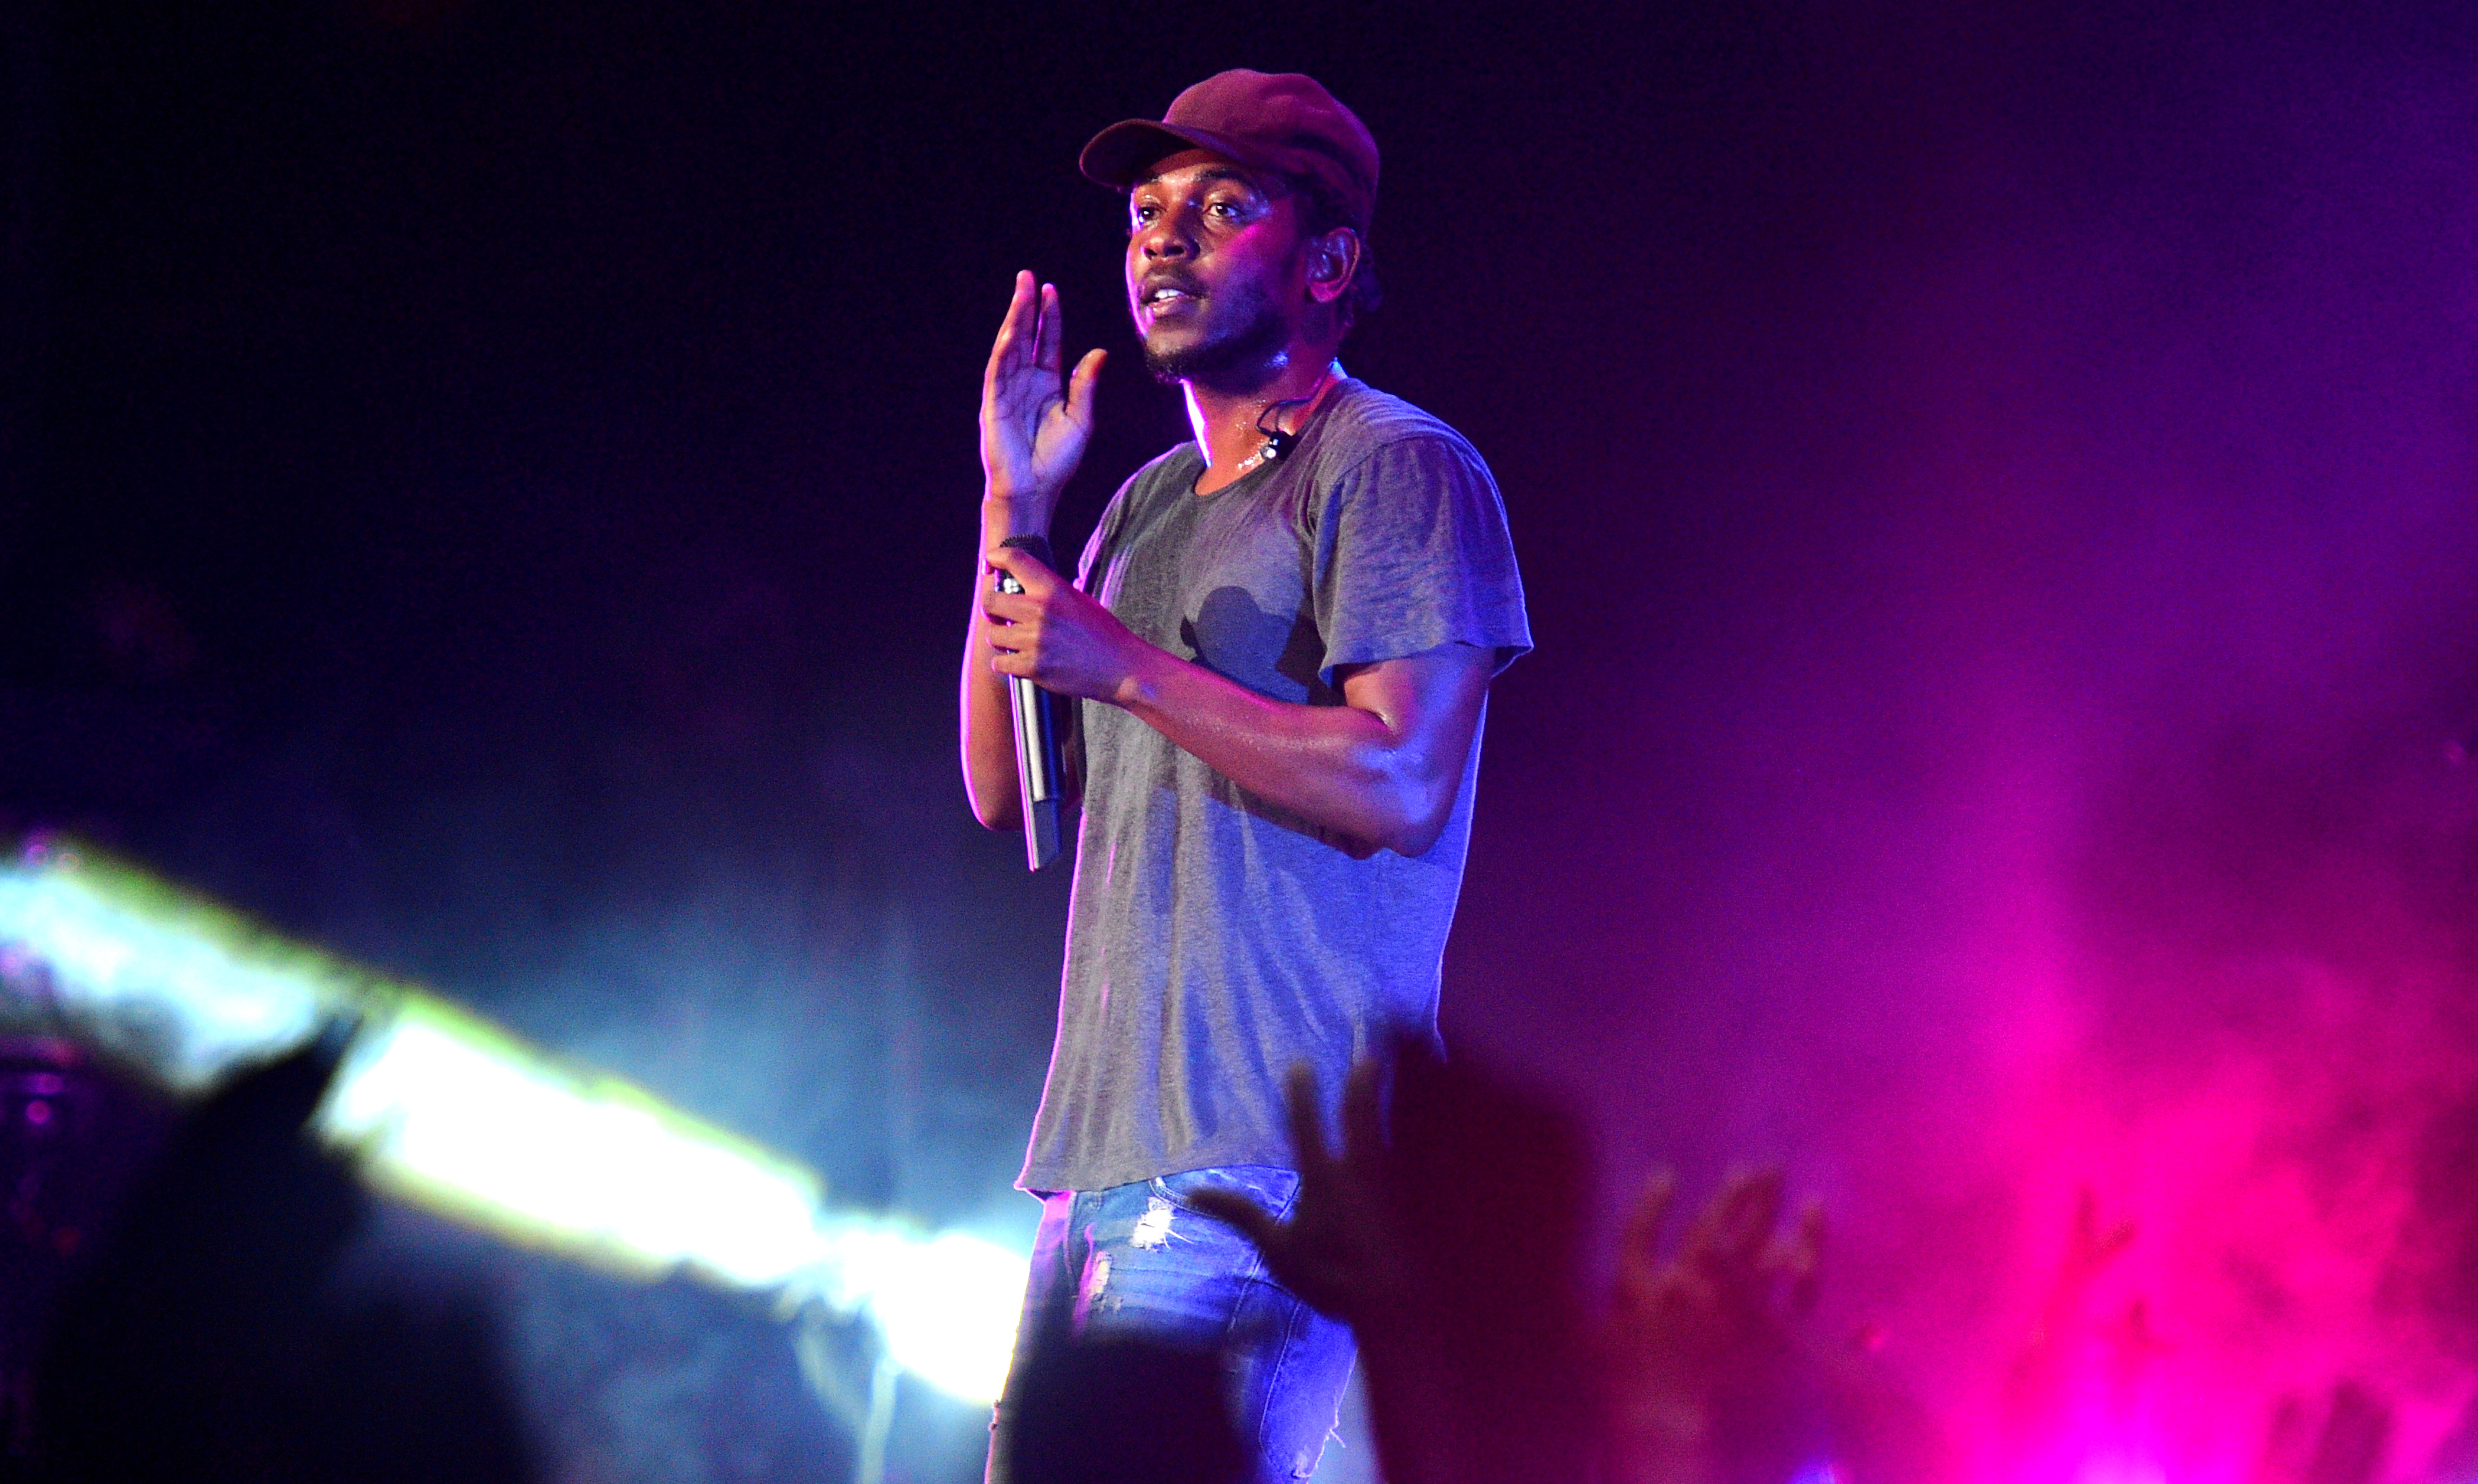 Kendrick Lamar's 'To Pimp a Butterfly': A Track-by-Track Guide